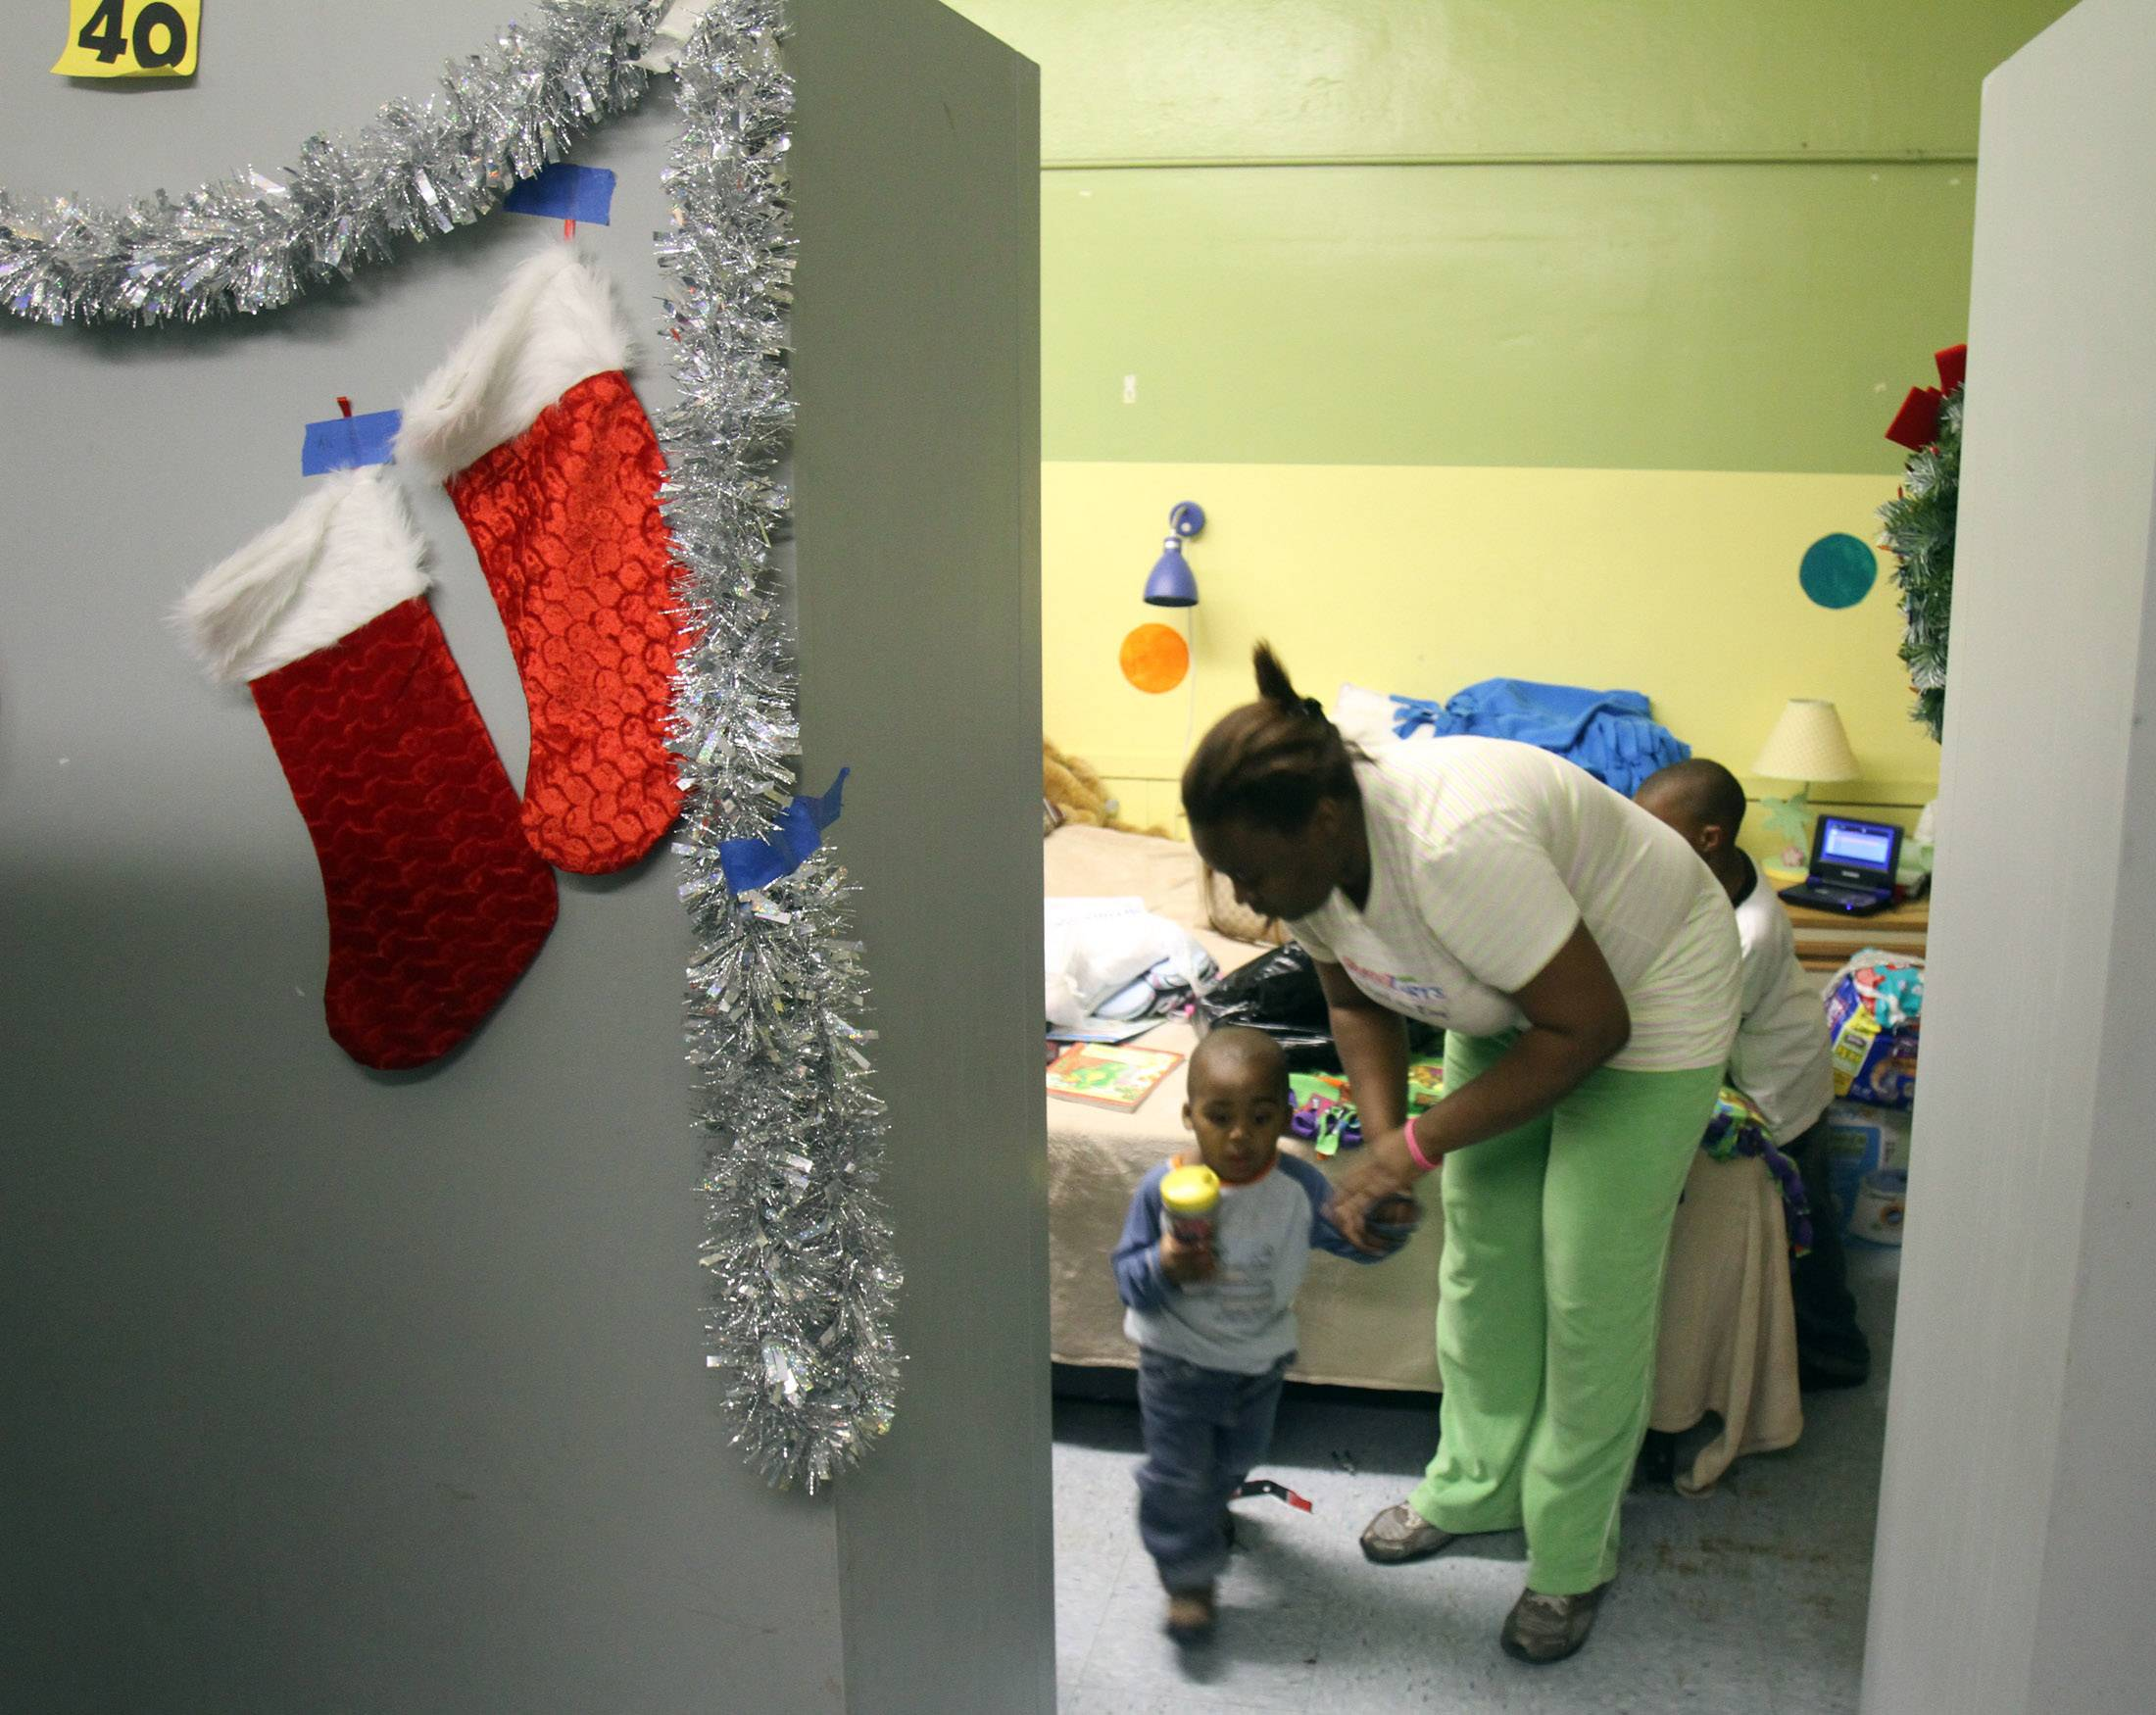 Latoya Hawkins gets ready for dinner with her 1 year old son Jermain at the pads family center in Waukegan Monday. Her living area was decorated with garland and Christmas stcokings. The facility is a 24 hour home for 42 clients.